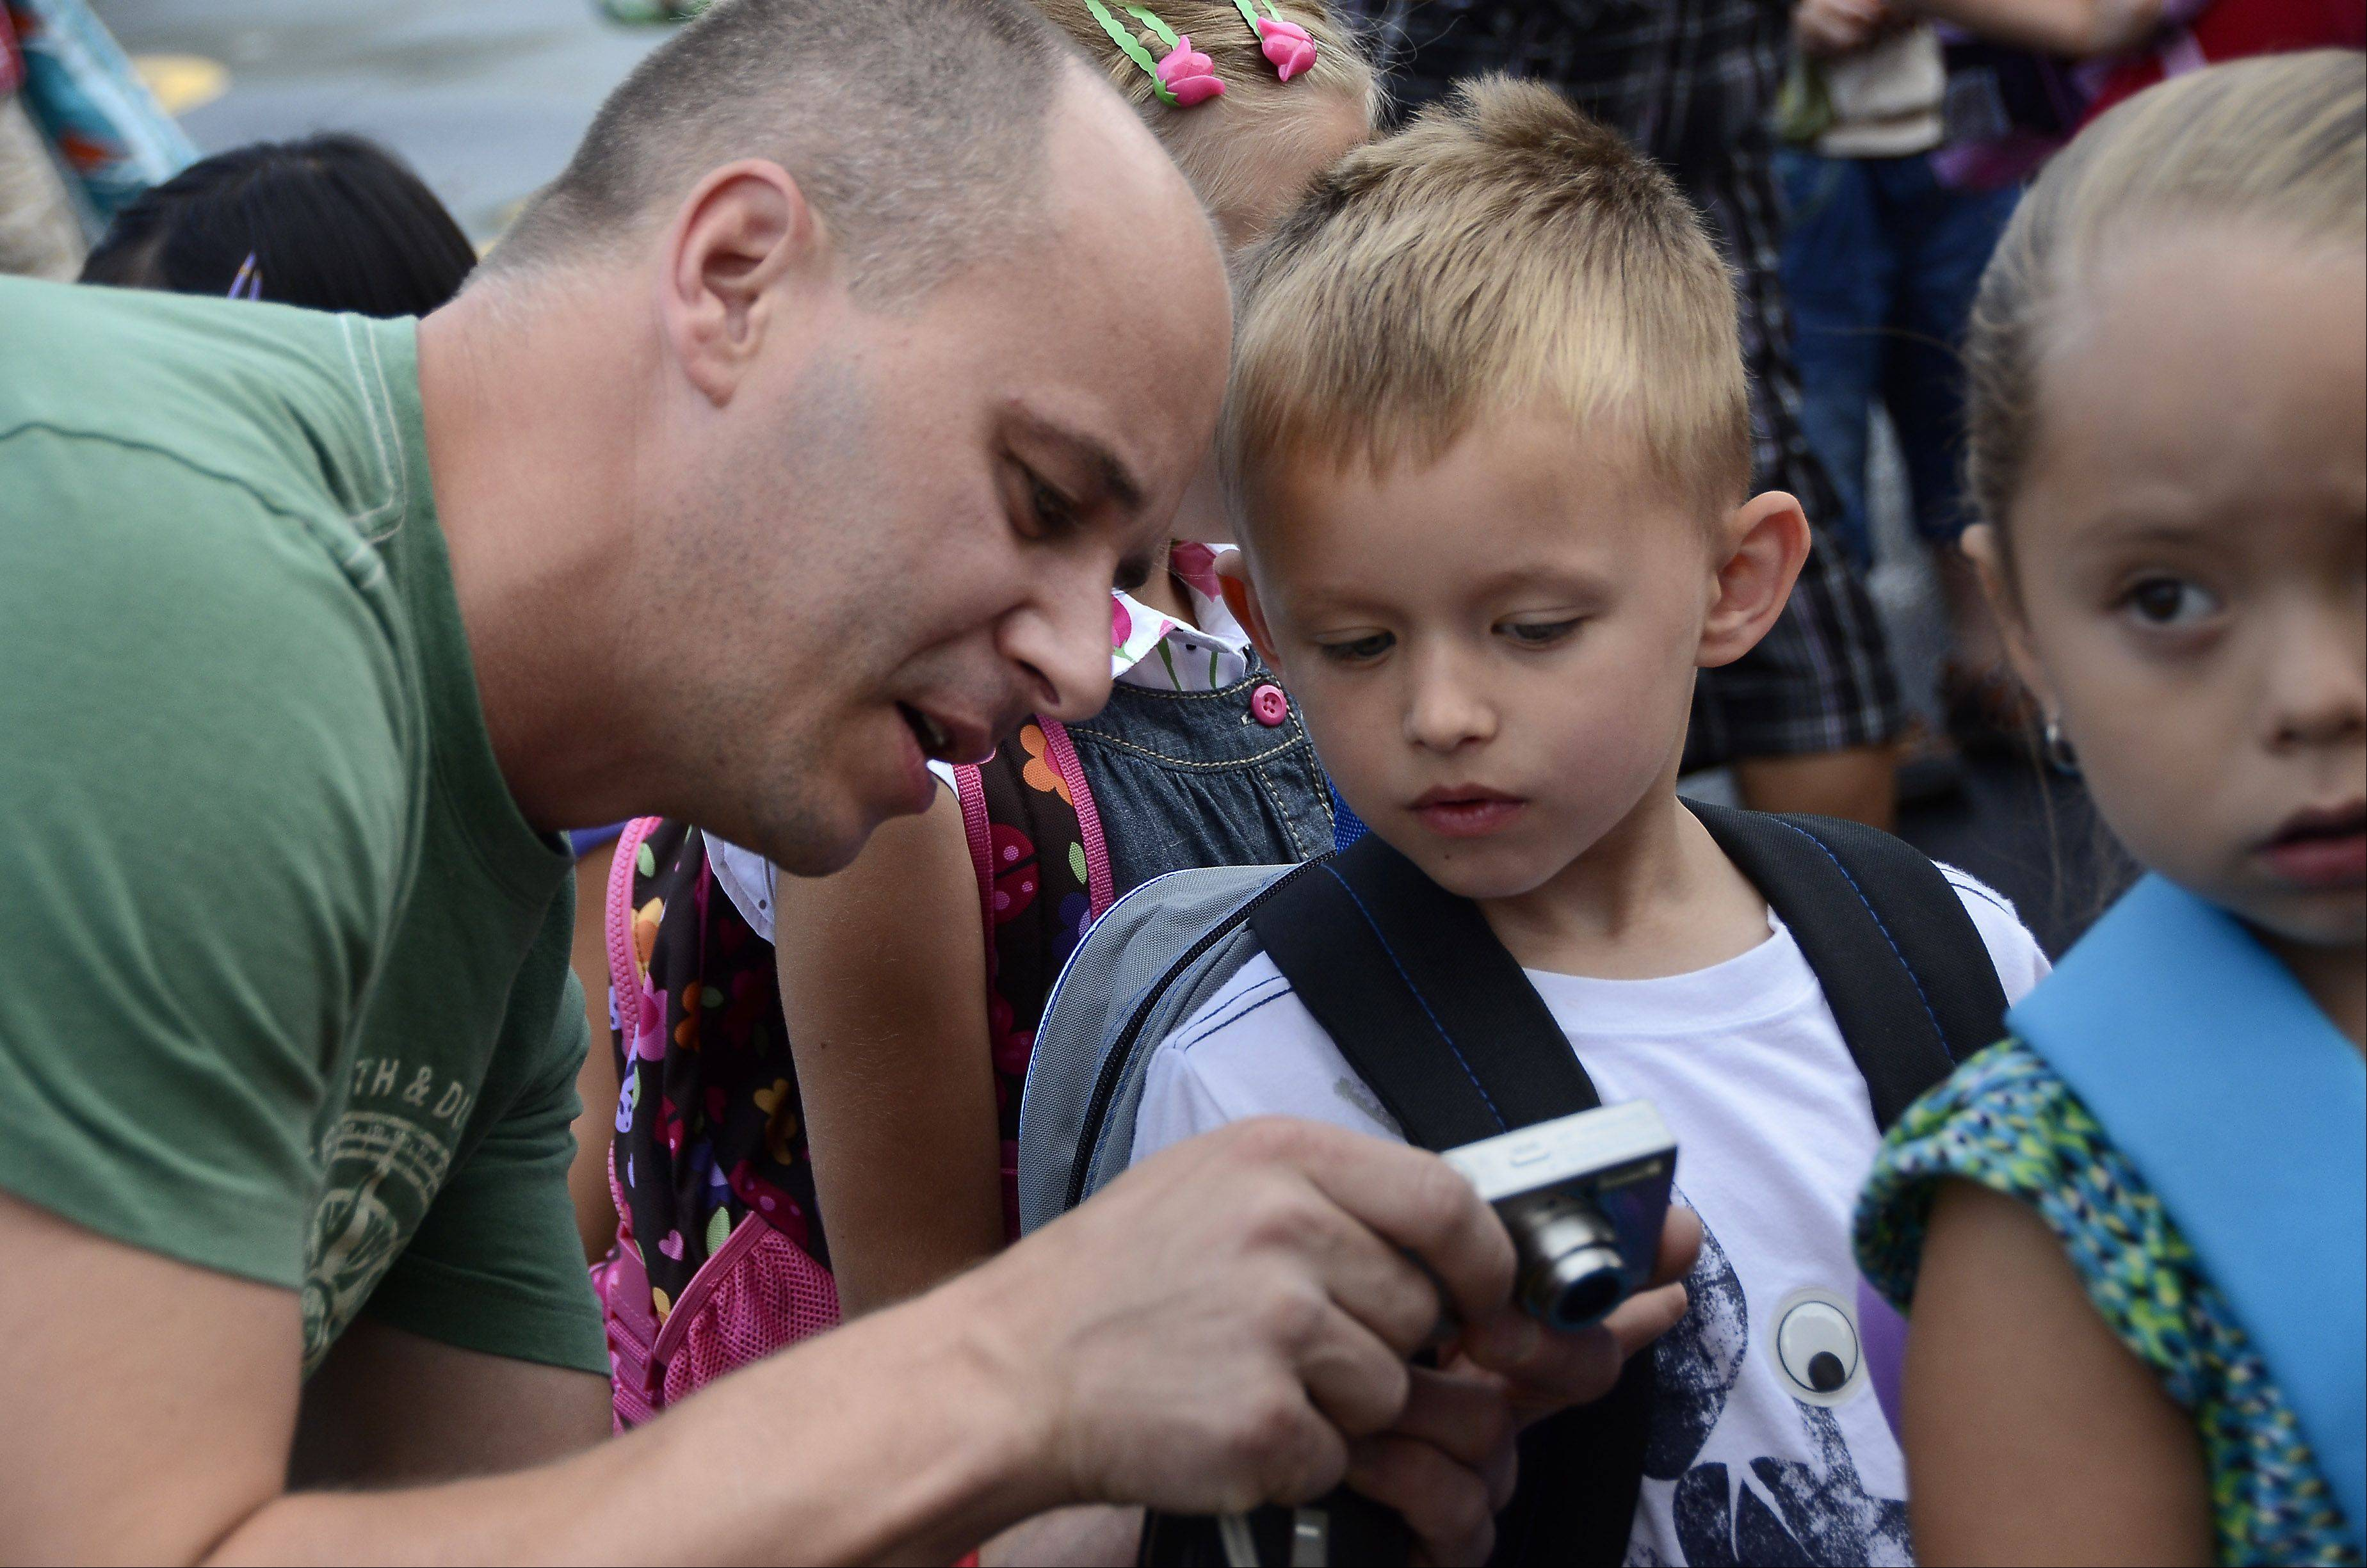 Giak Wojtek shows his son, Maximilian, 5, the picture he took of him as students start classes Wednesday.